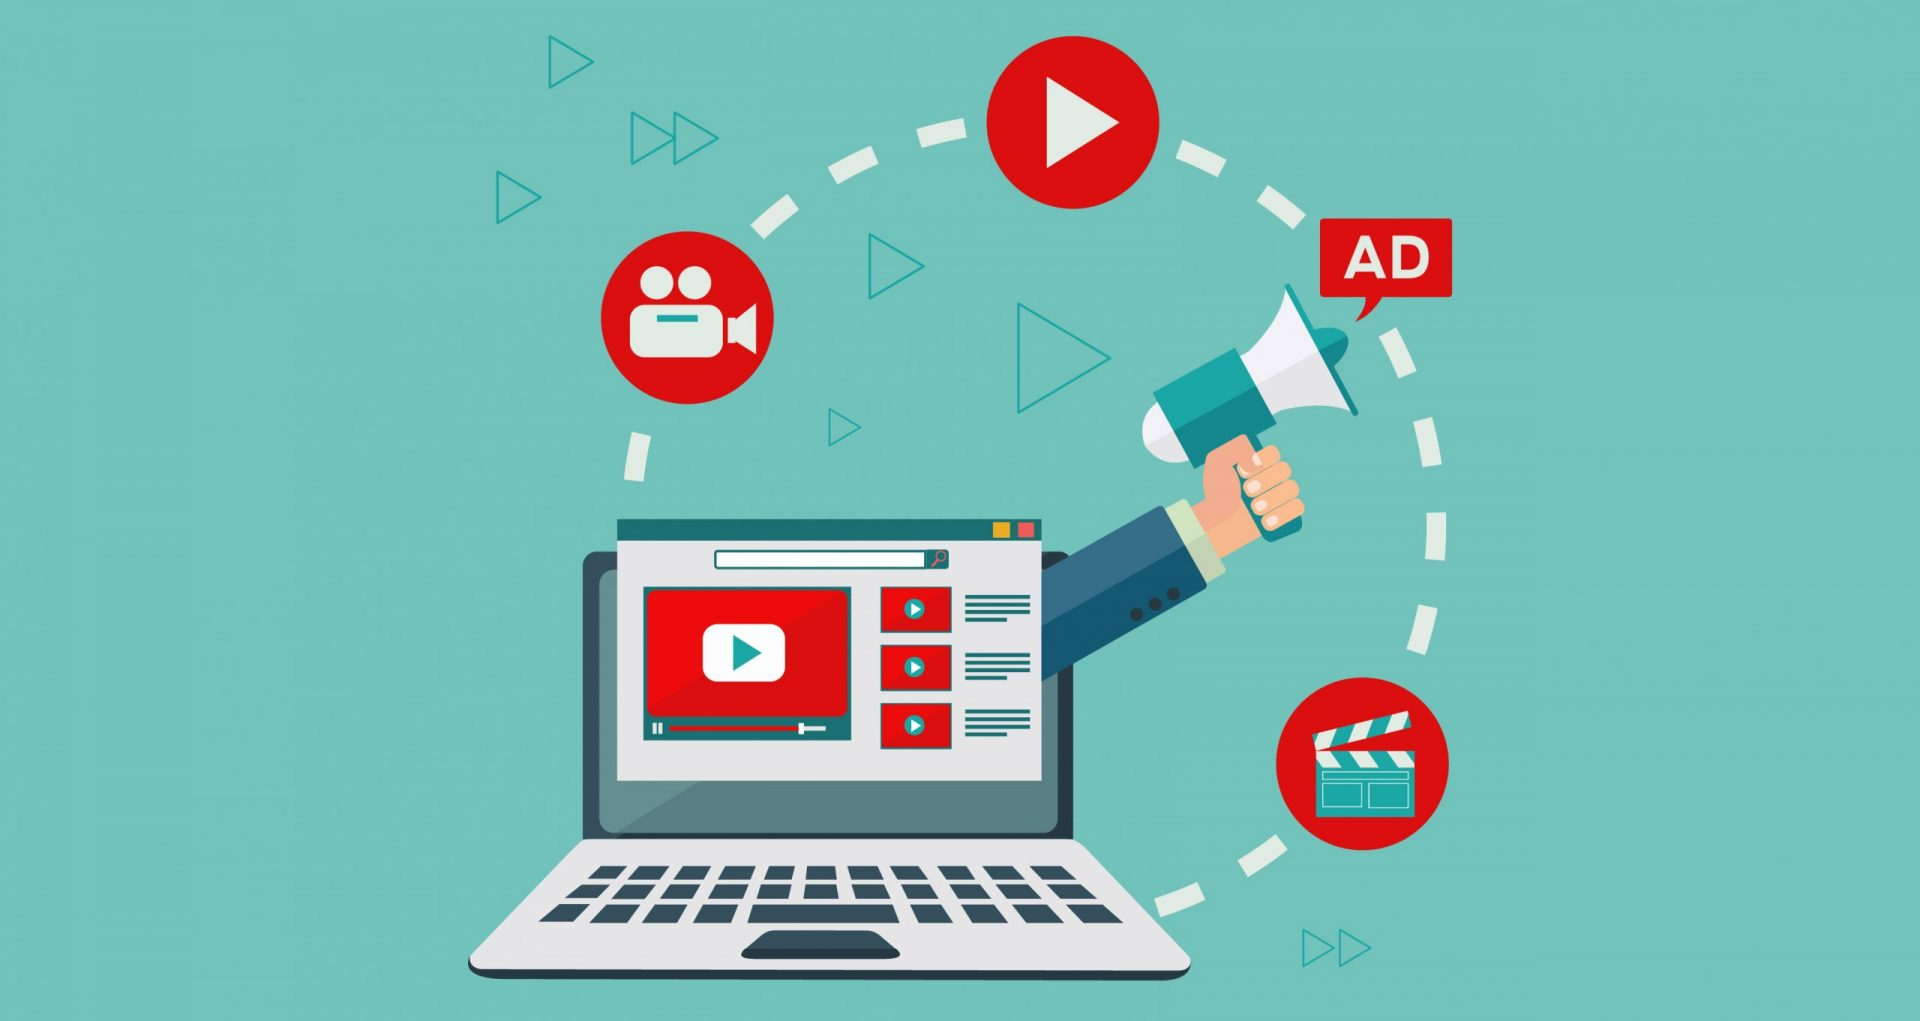 IS IT WORTH USING ADS ON THE GOOGLE ADS DISPLAY NETWORK?